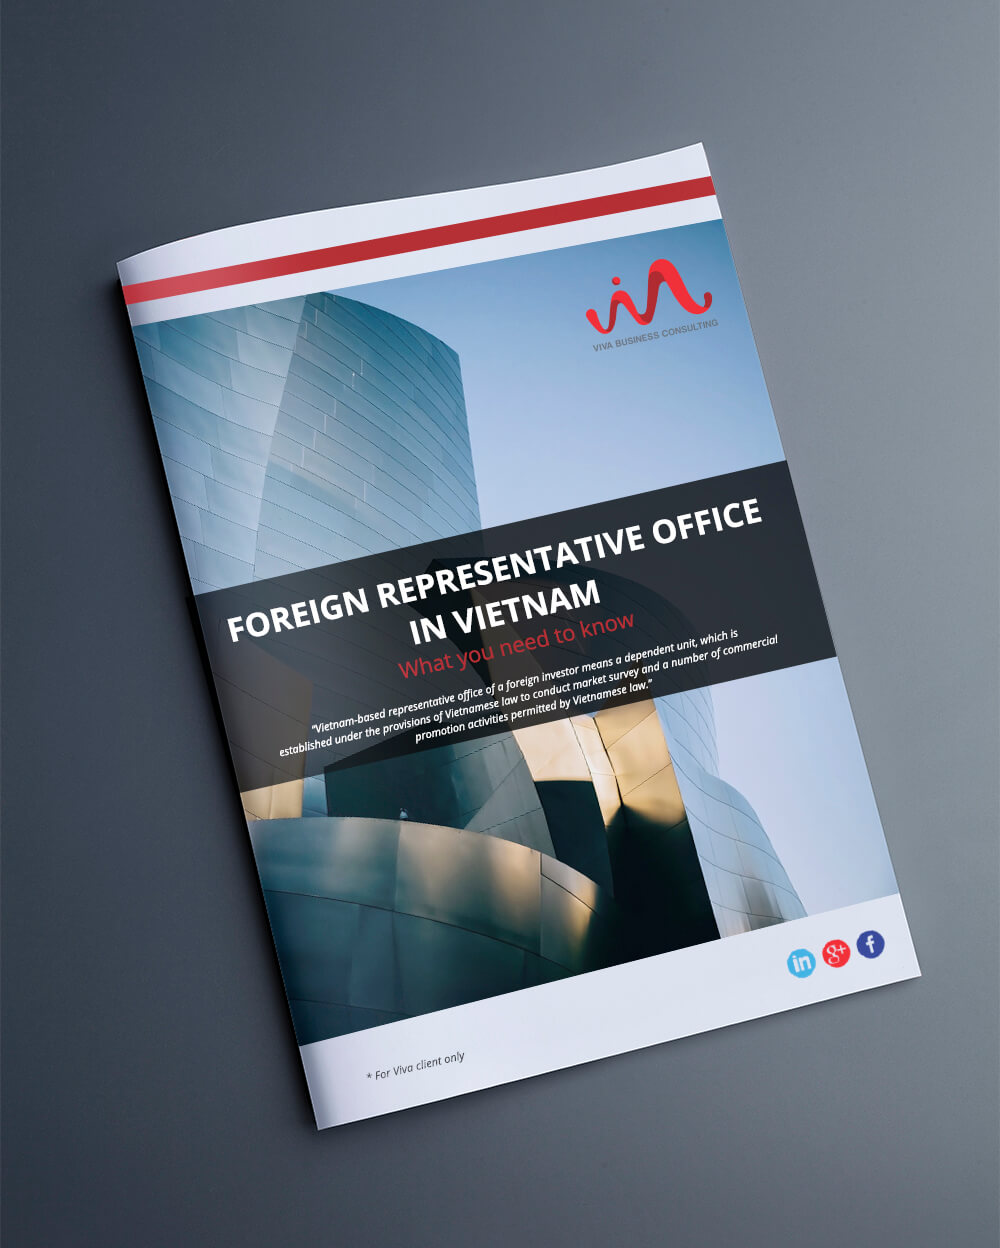 Foreign representative office 2019 in Vietnam handbook